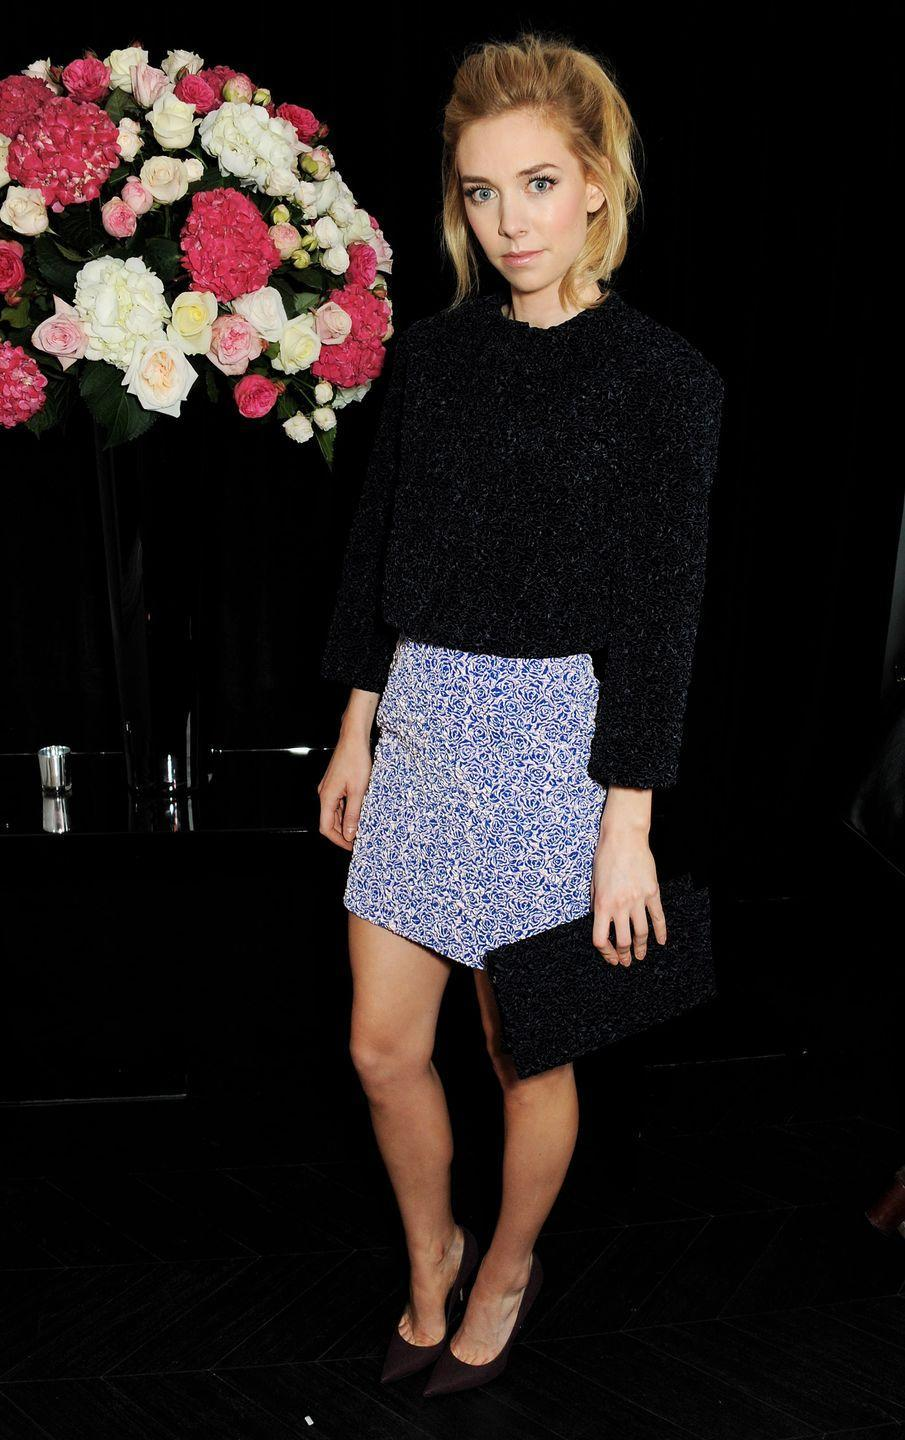 <p>Here, she attends the opening of the Dior Beauty Boutique in Covent Garden.</p>